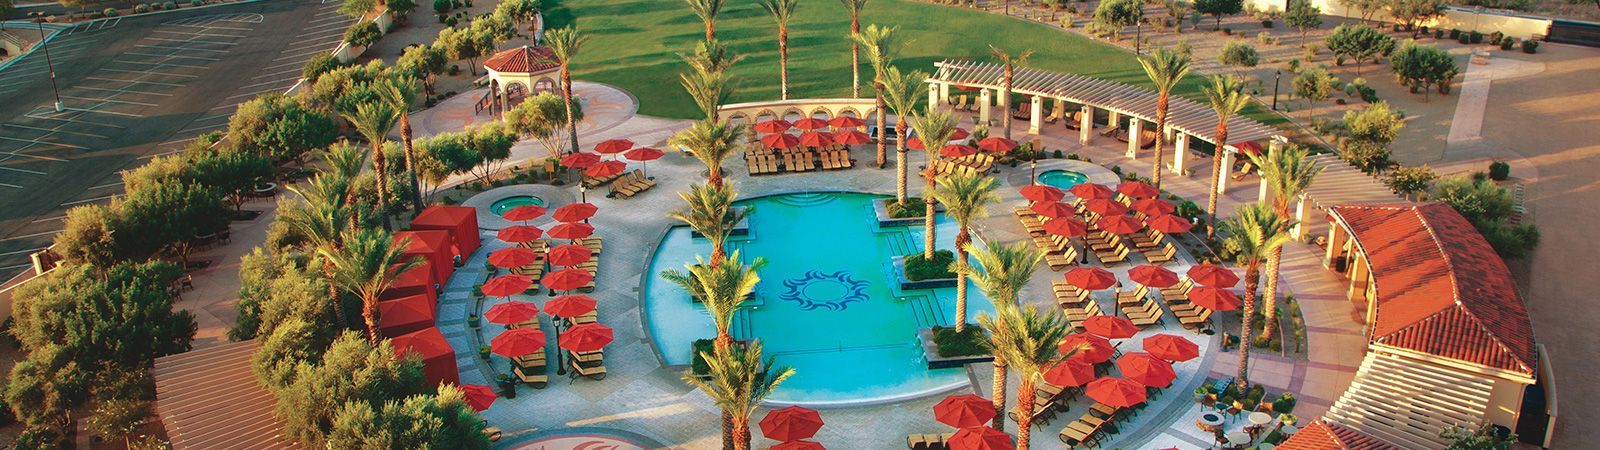 Pool at Casino Del Sol